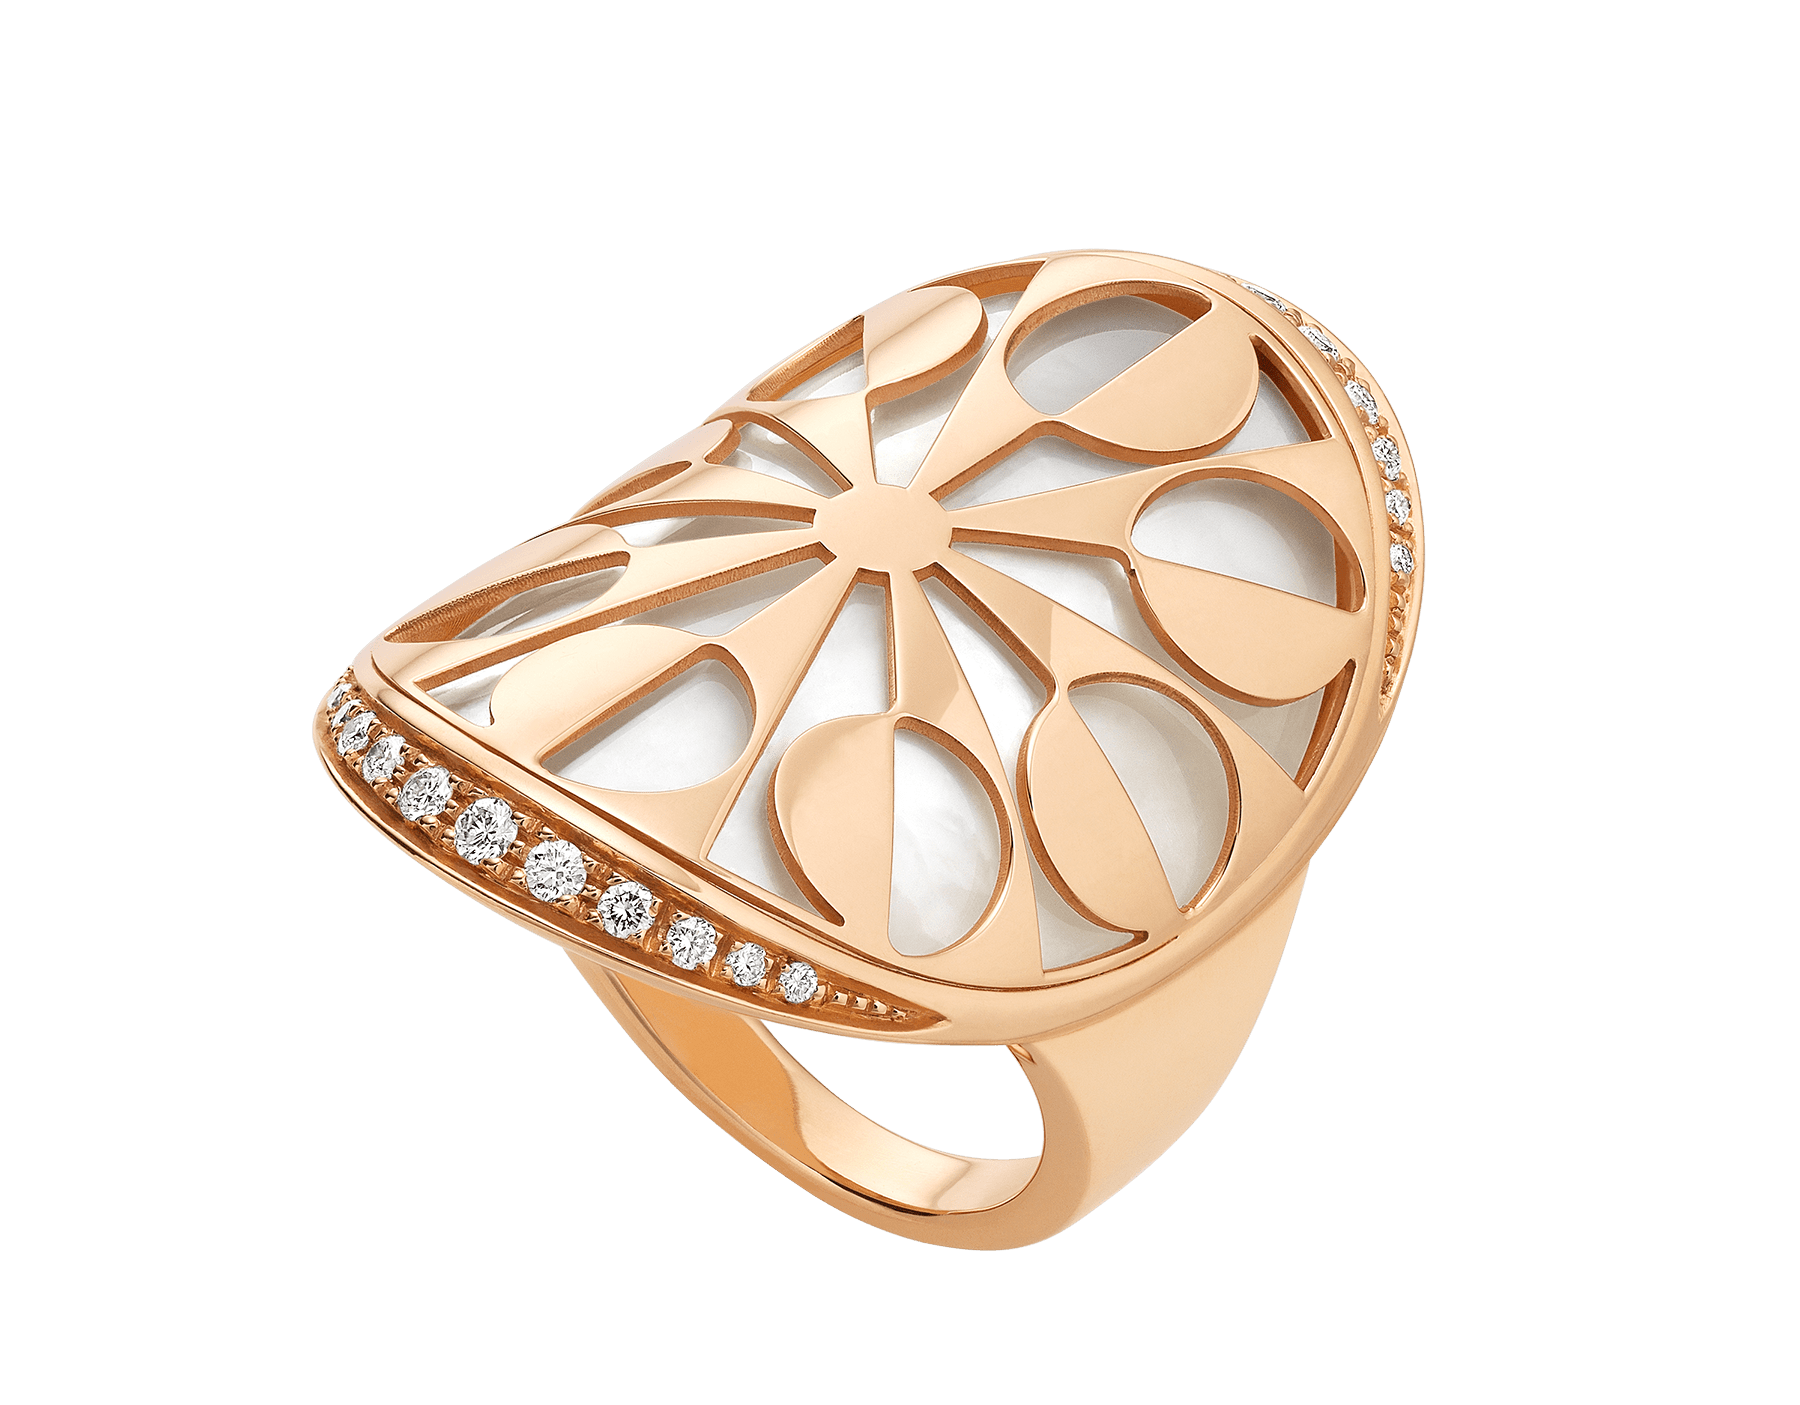 Intarsio 18 kt rose gold ring set with mother-of-pearl elements and pavé diamonds AN855768 image 1